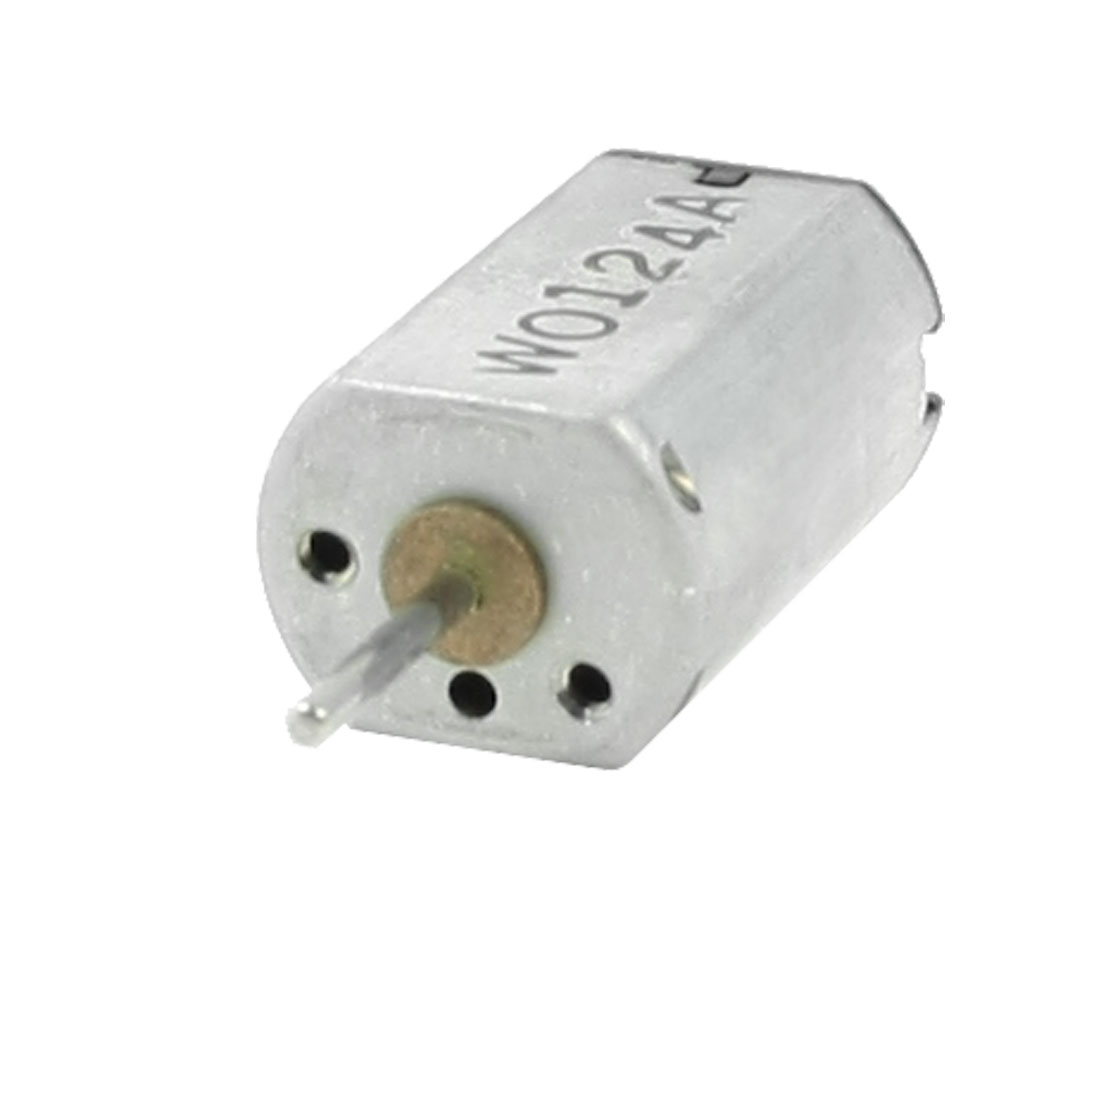 N20 DC 3V 0.01A 1000RPM Output Speed Electric Mini Motor for DIY Robot Toys